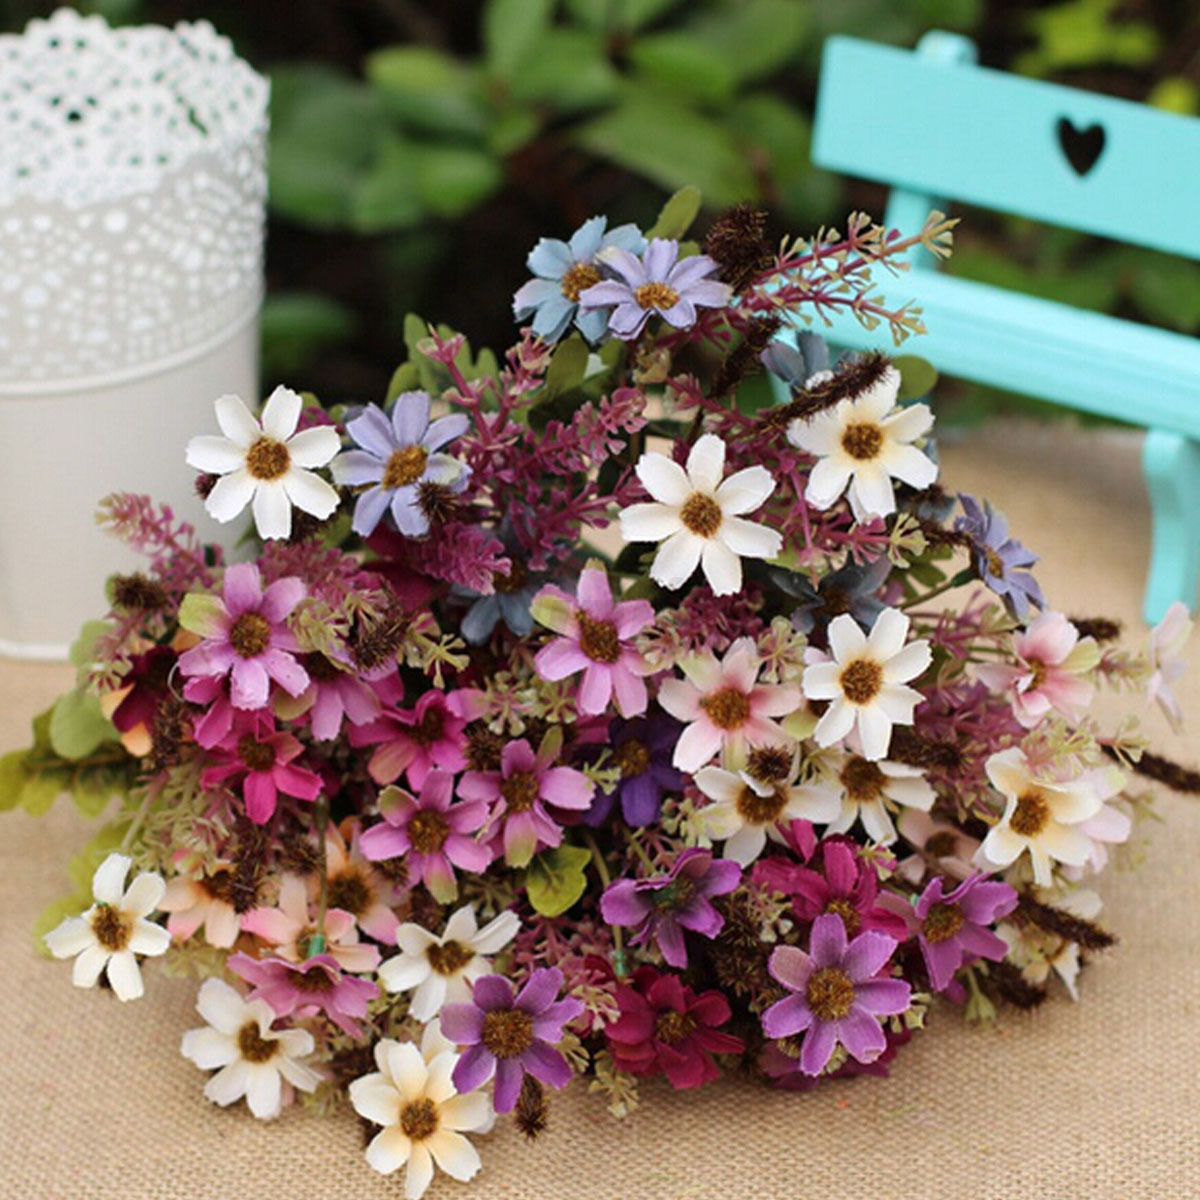 18 heads fake silk flowers bouquet artificial daisy wedding floral image is loading 18 heads fake silk flowers bouquet artificial daisy izmirmasajfo